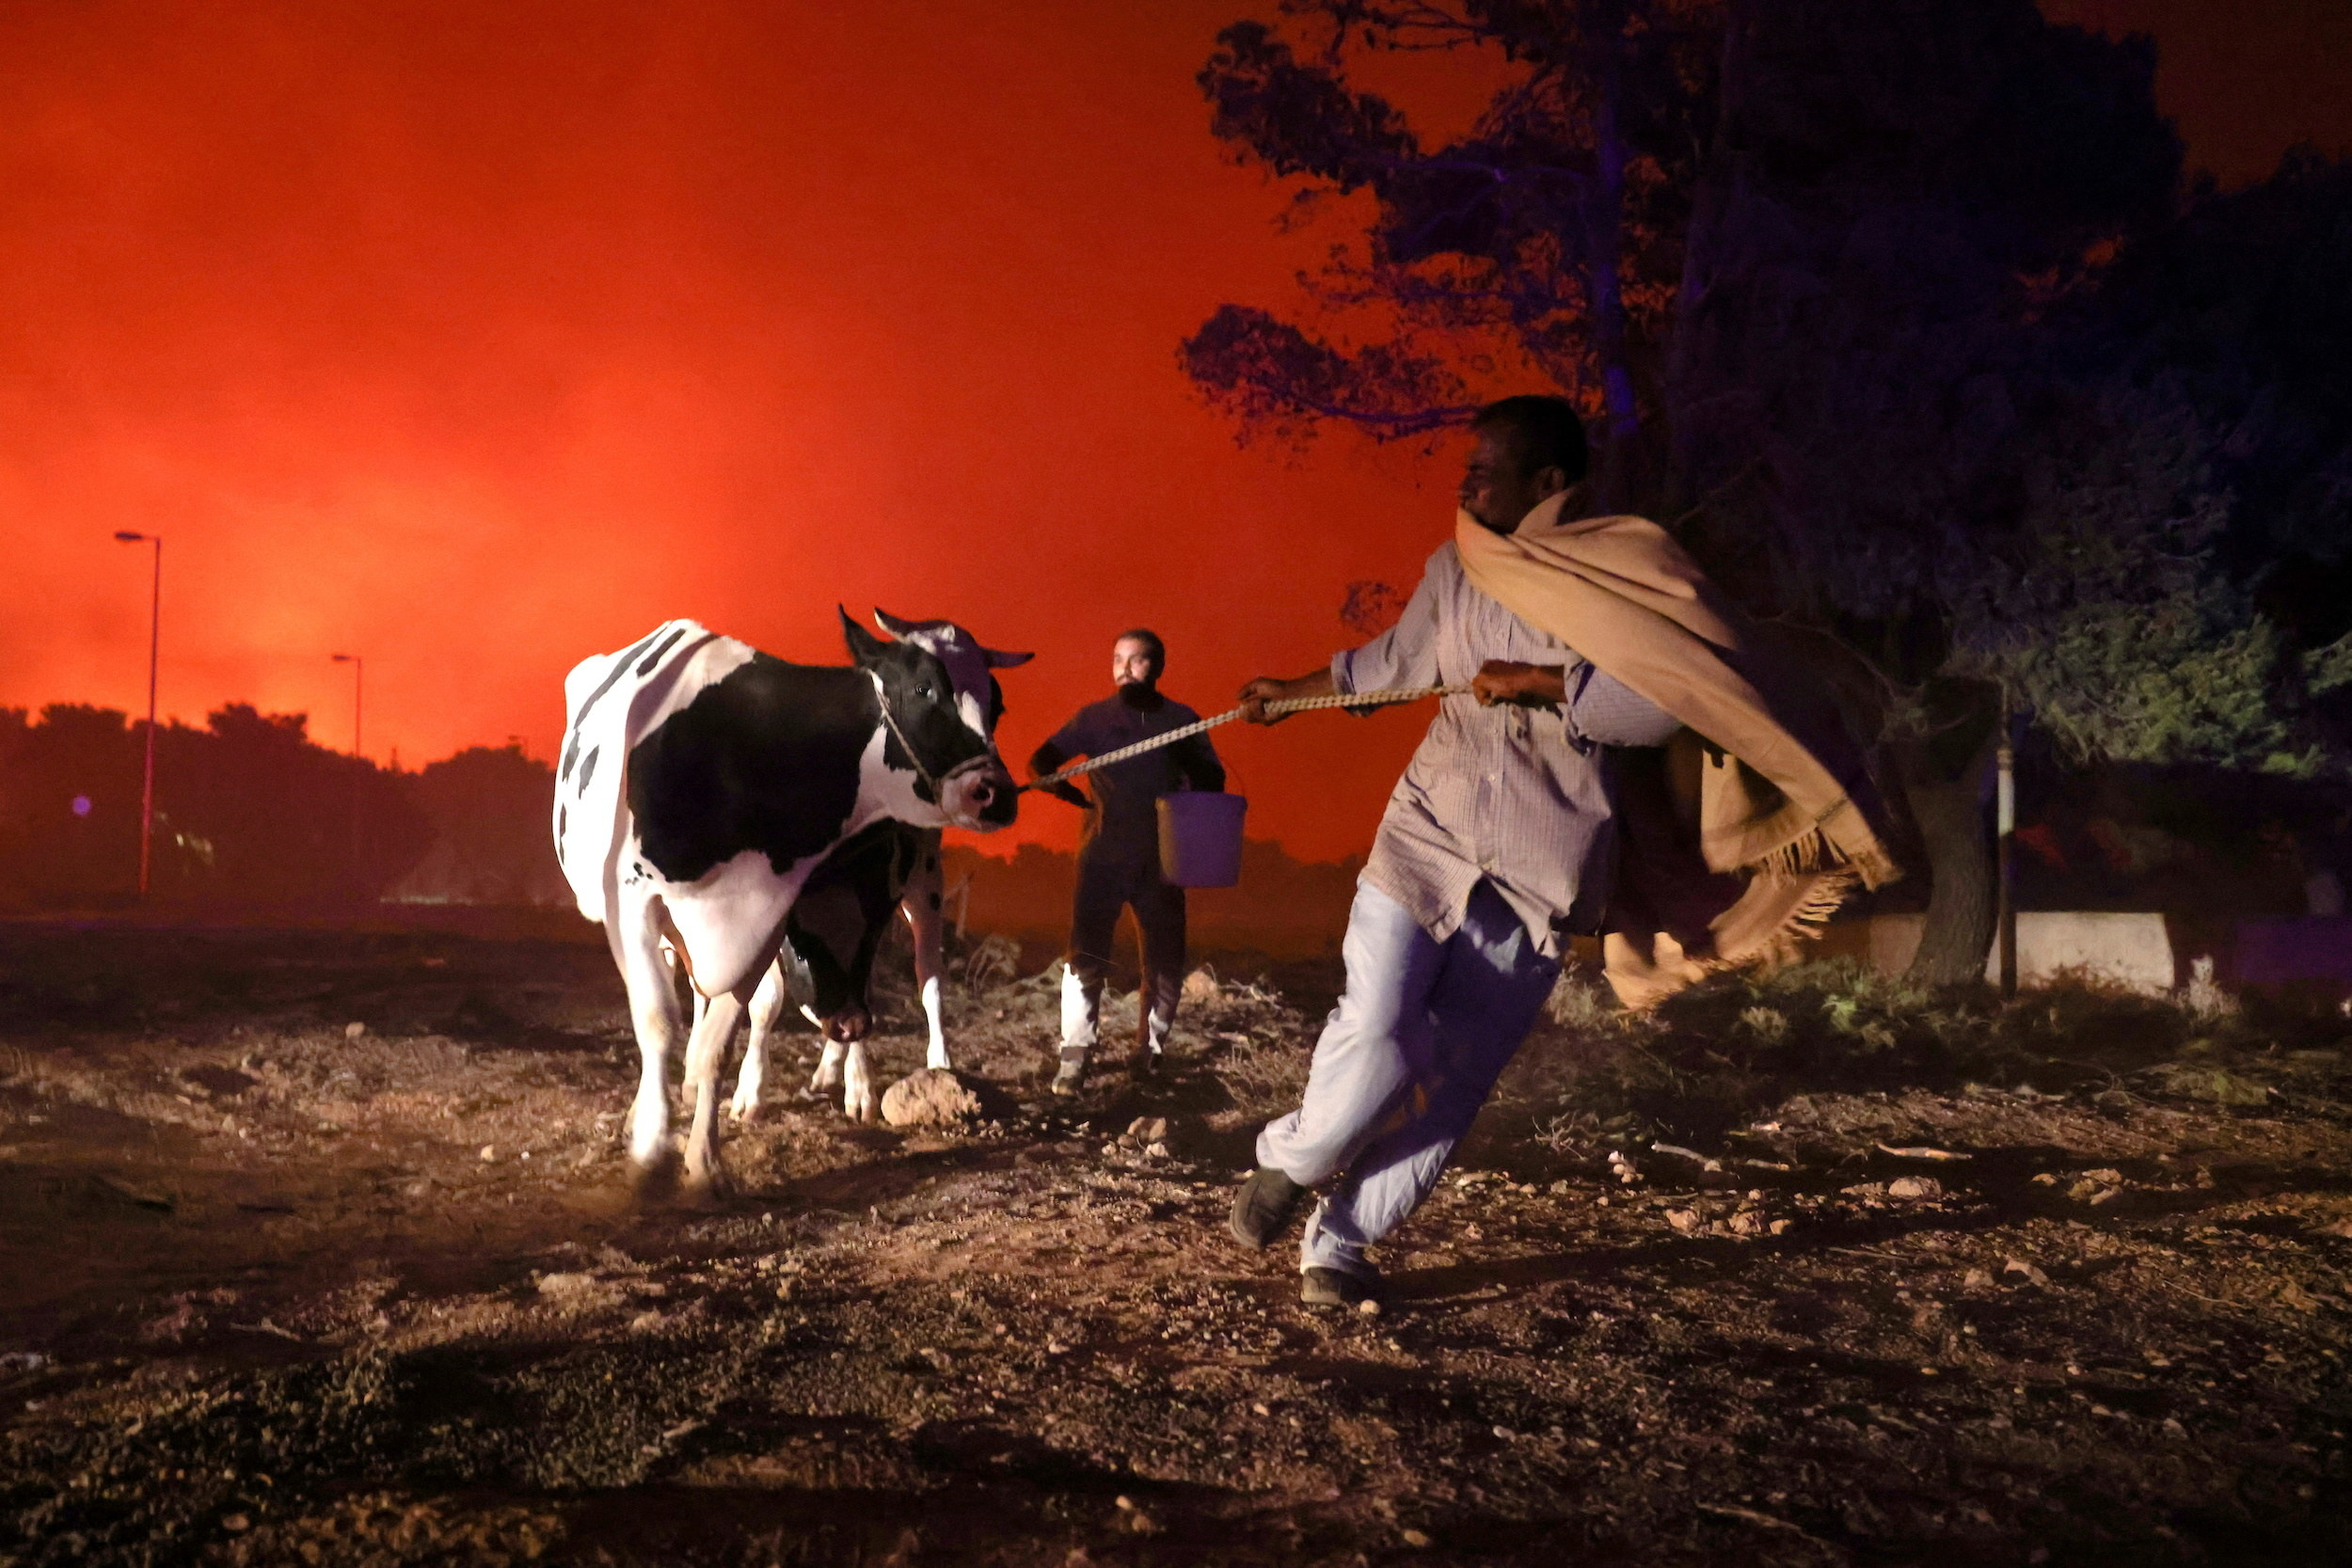 A man pulls his cow as they attempt to escape the wildfires in the background